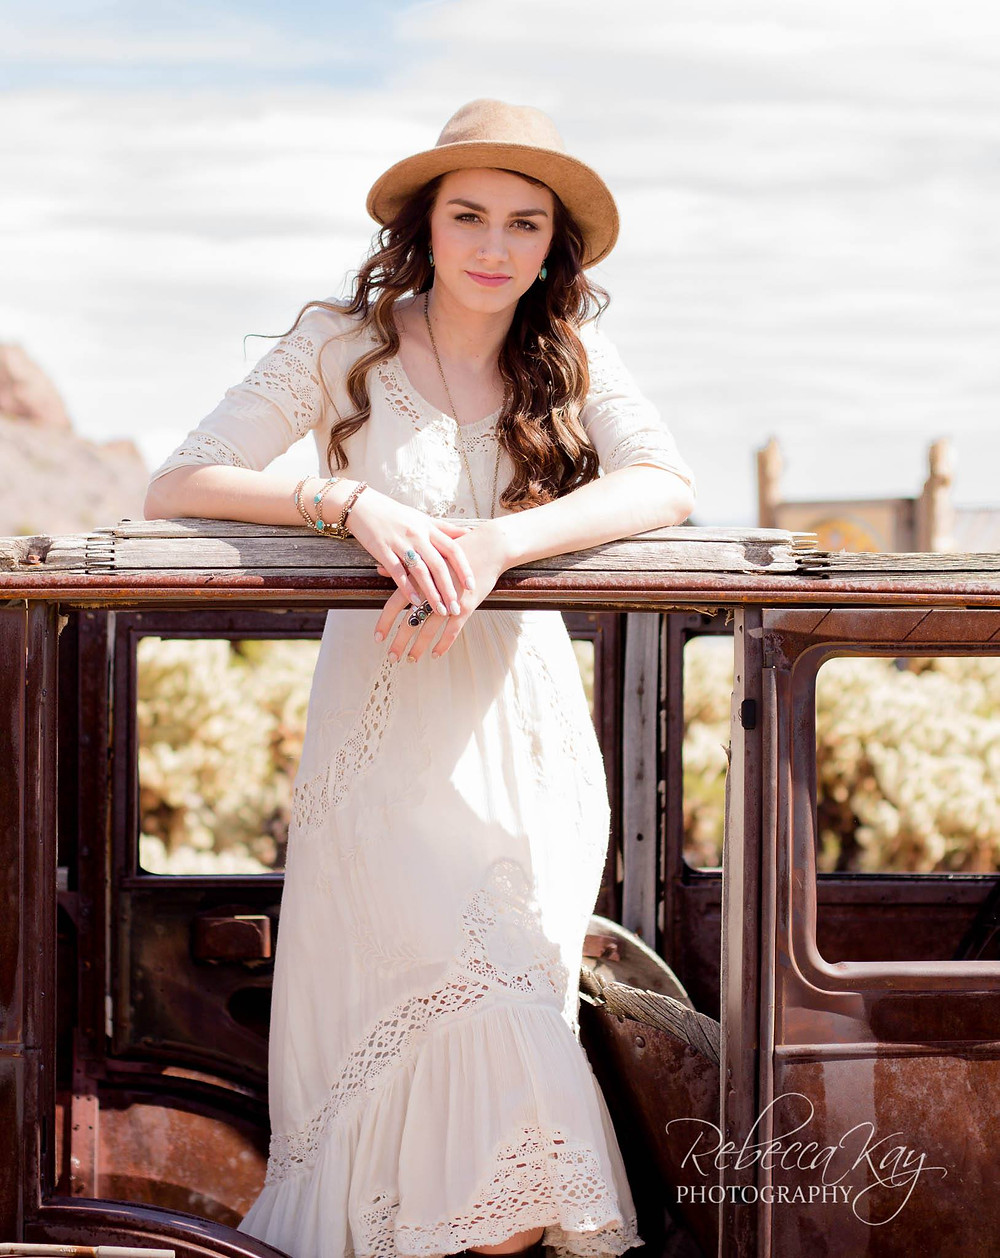 Alexis photographed on the Nevada desert by Rebecca Kay Photography.